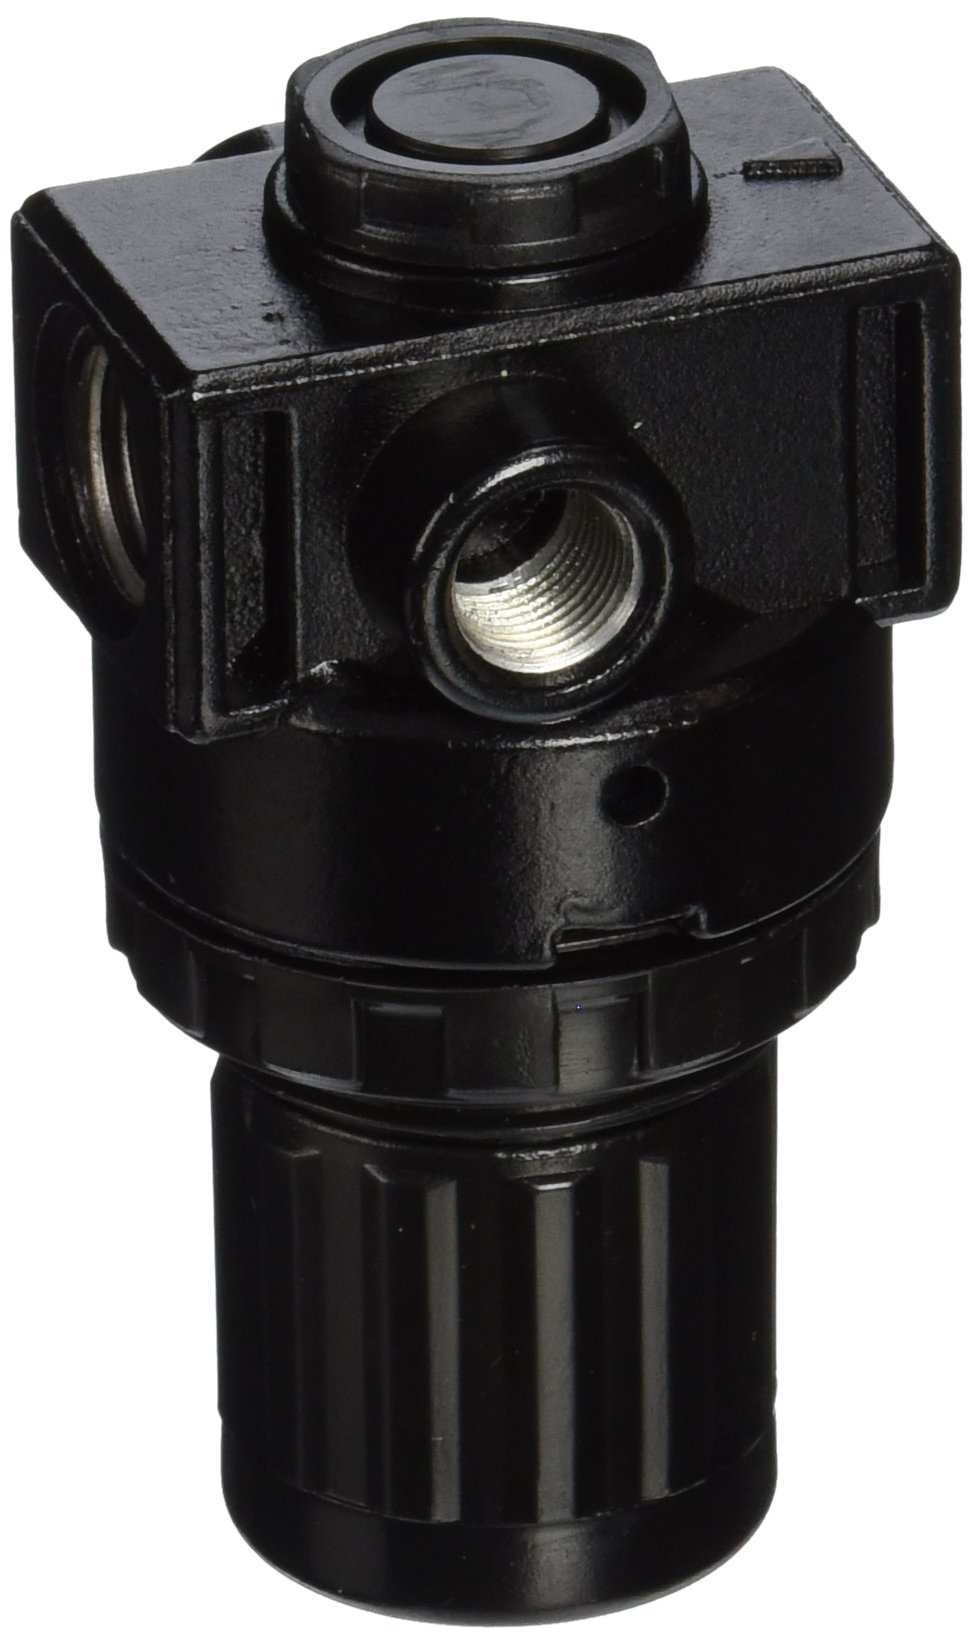 Hitachi 885807 Replacement Part for Power Tool Pressure Reducer